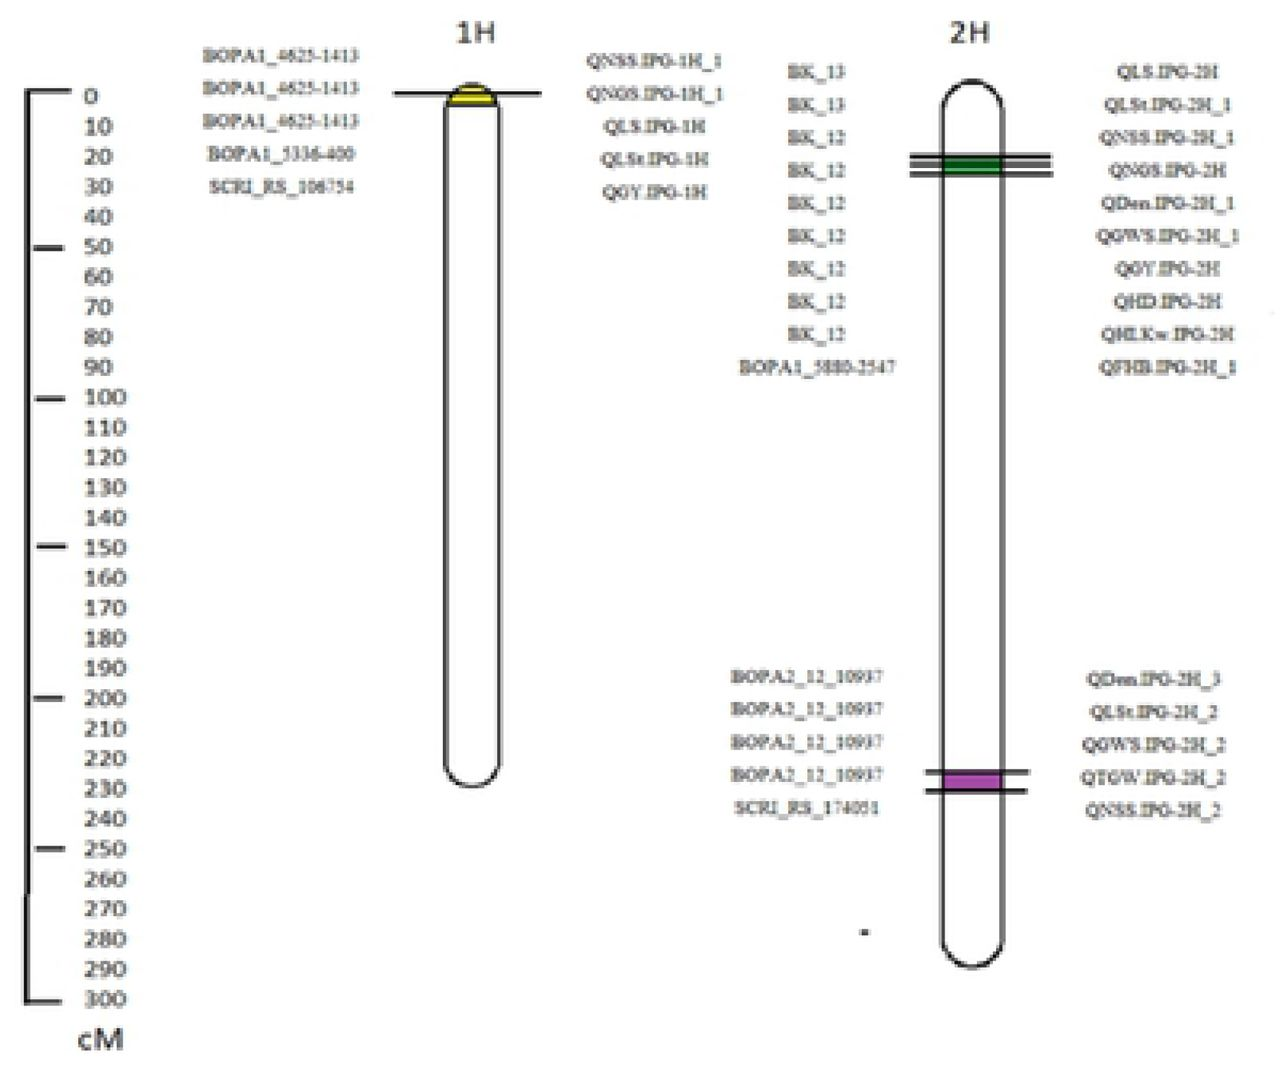 Mapping of Quantitative Trait Loci for Traits linked to